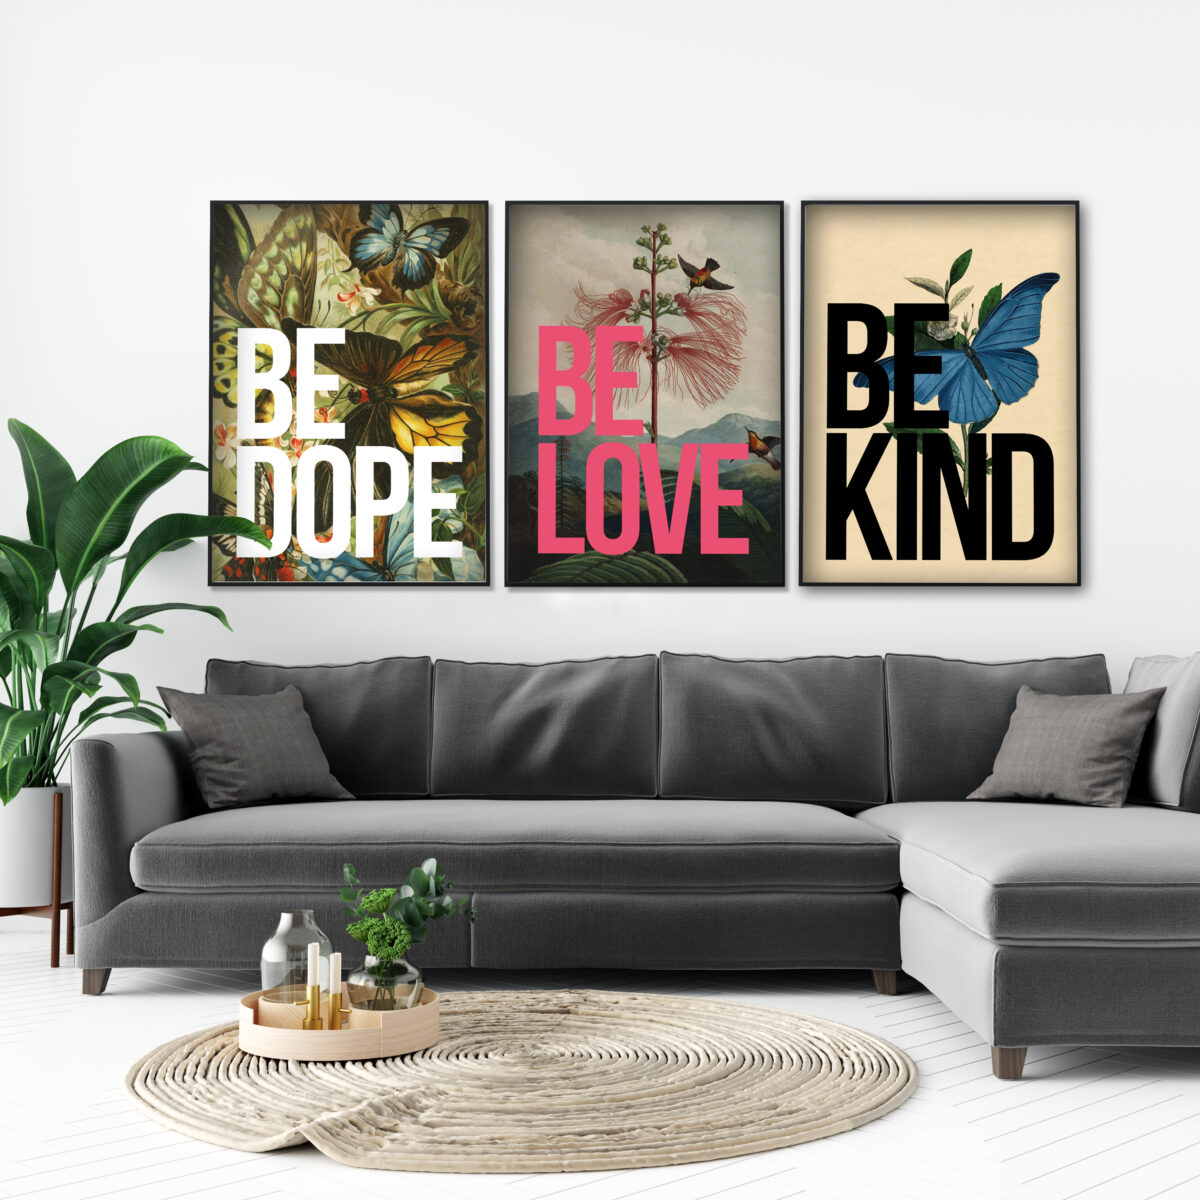 Vintage inspired gallery wall inspiration with our Vintage Collection of oversized Typography Artwork